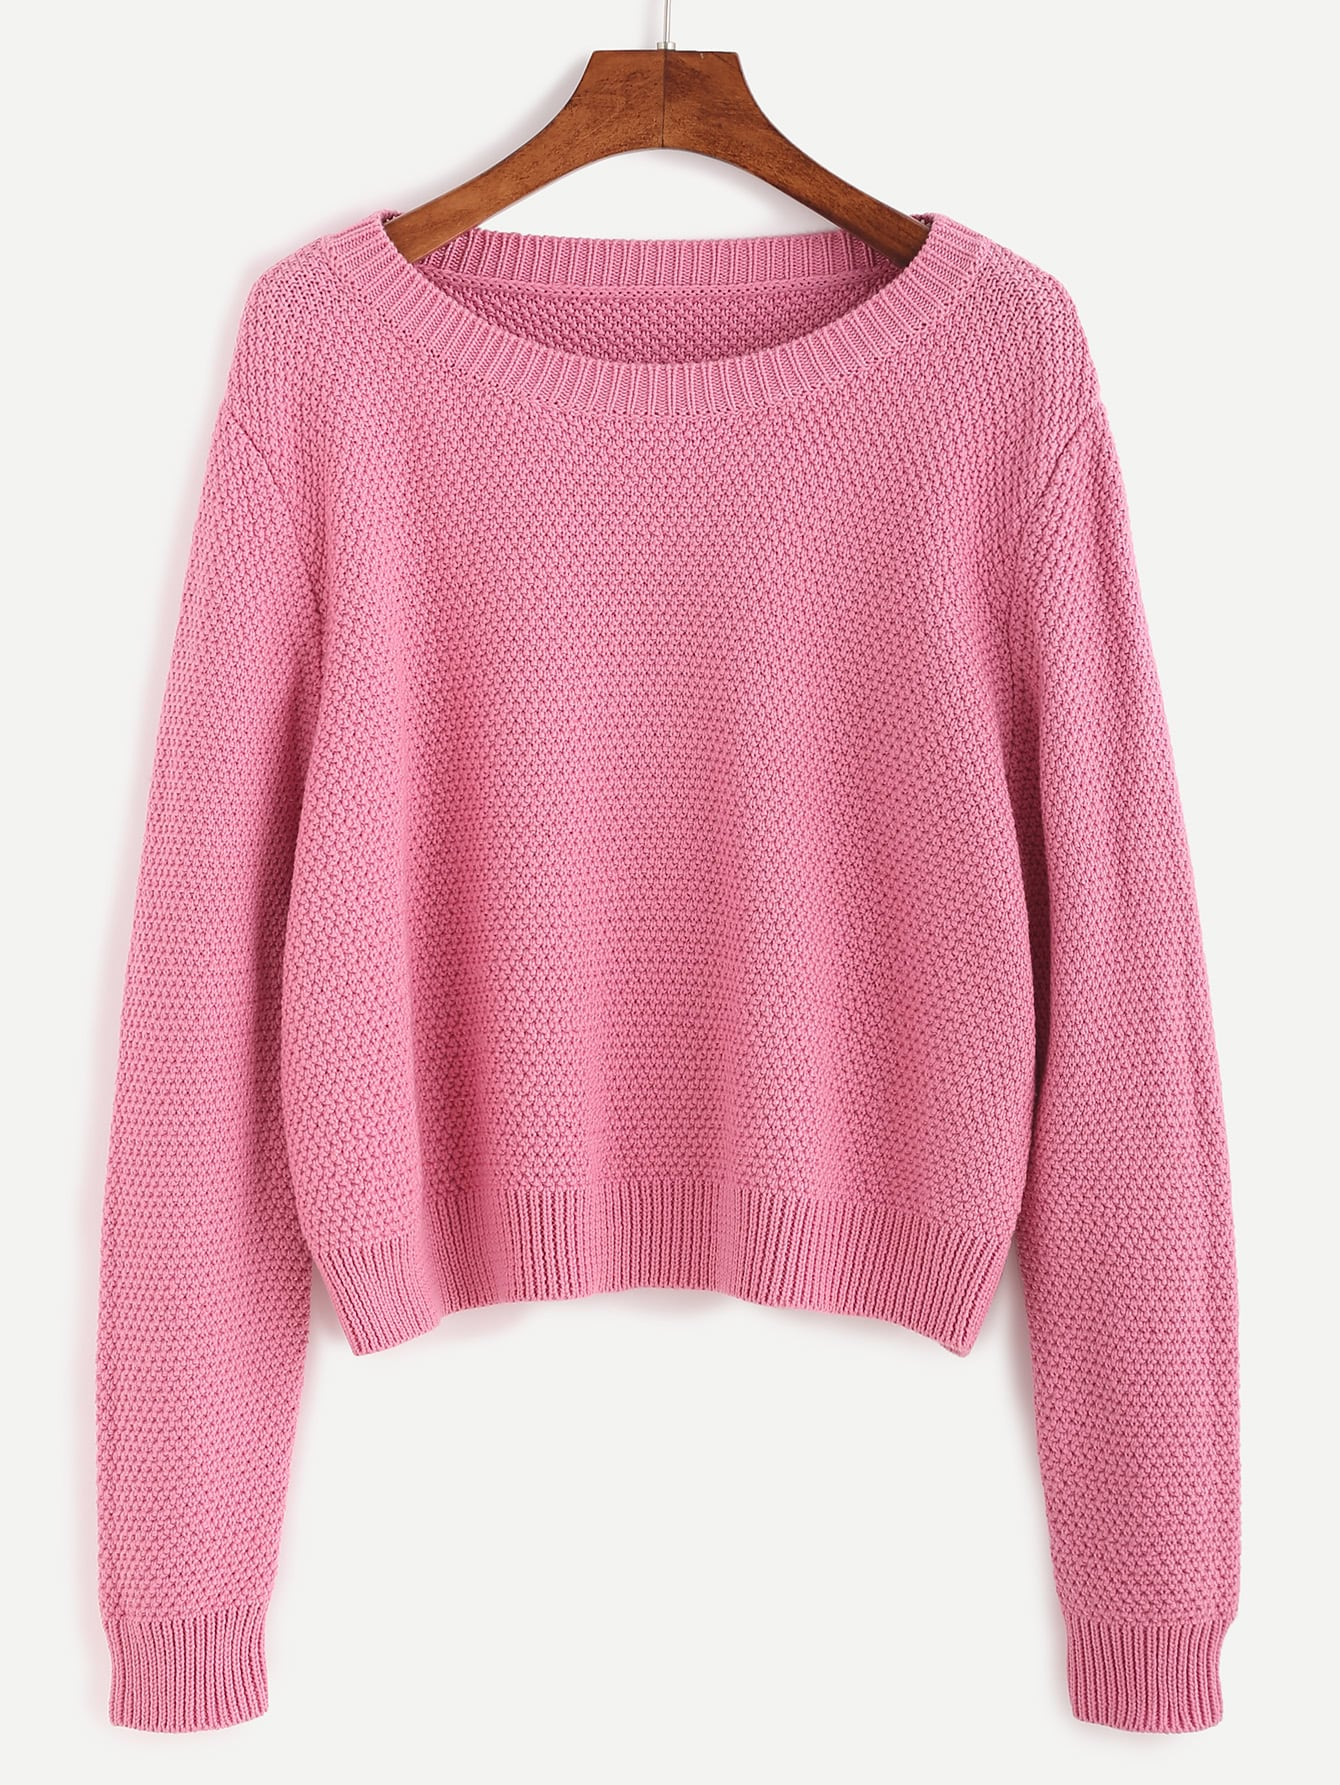 Pink Ribbed Trim Textured Pullover Sweater sweater160920465